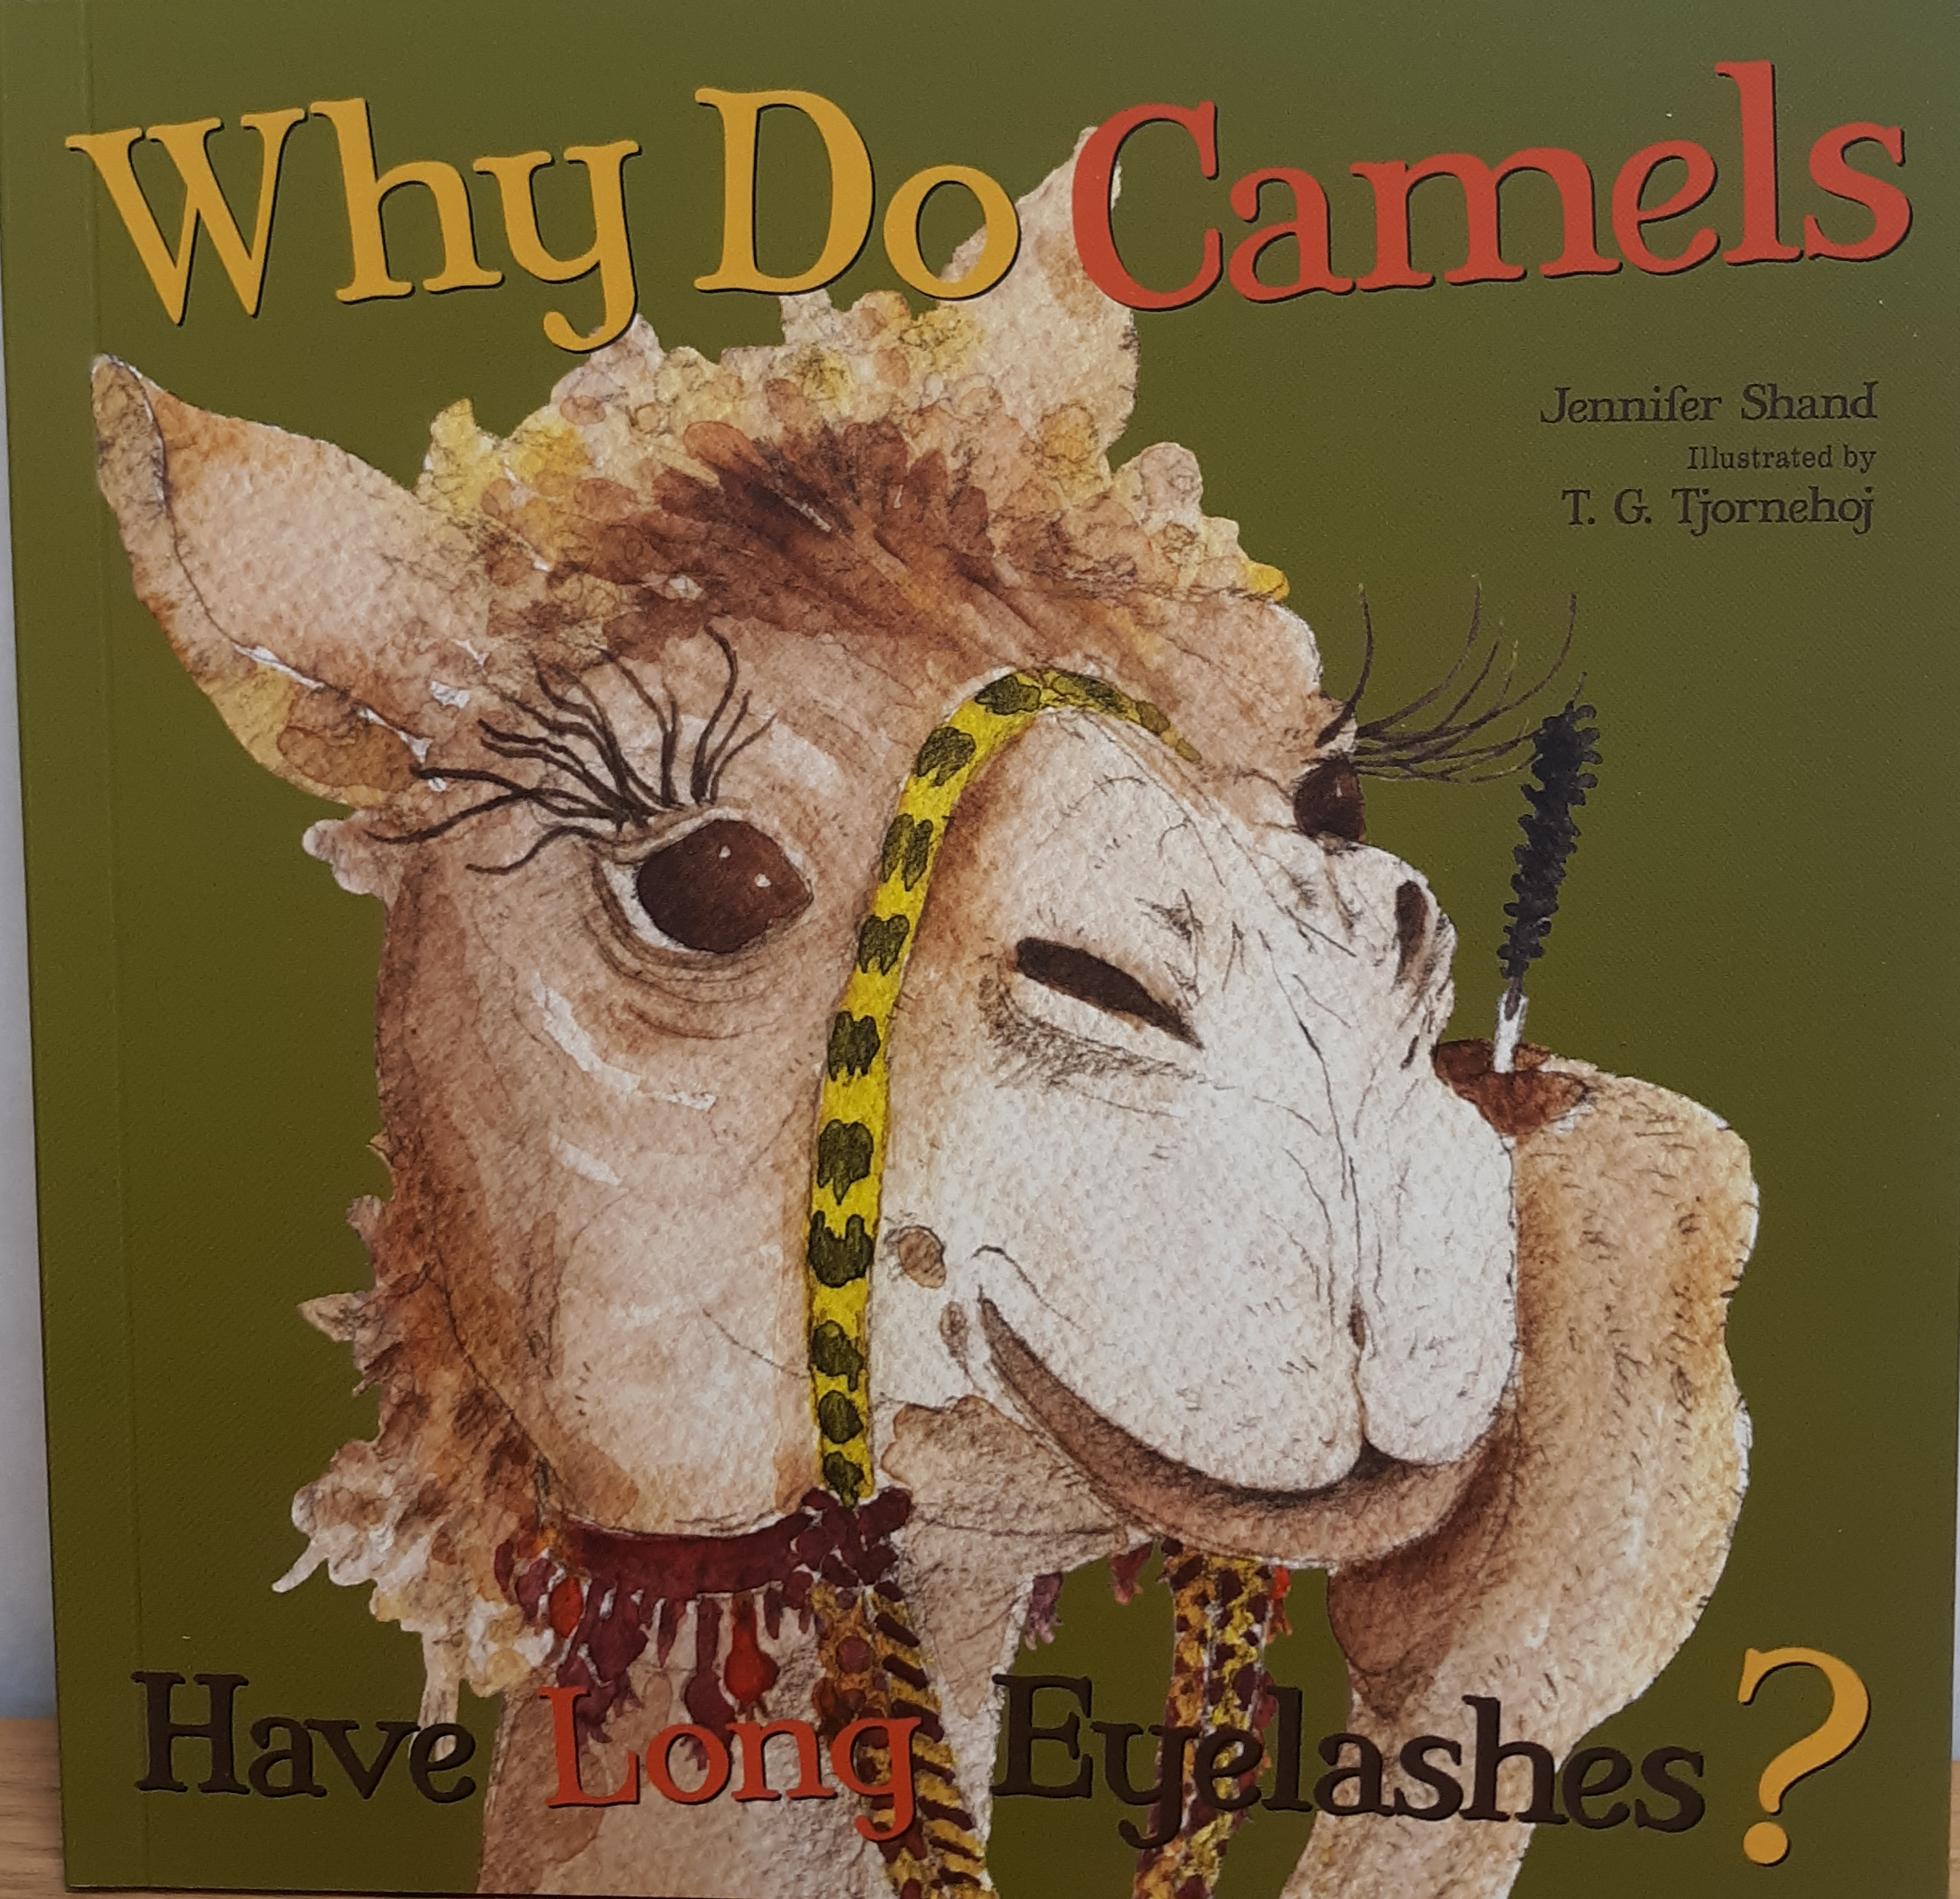 https://0201.nccdn.net/4_2/000/000/064/d40/why-do-camels-have-long-eyelashes.png